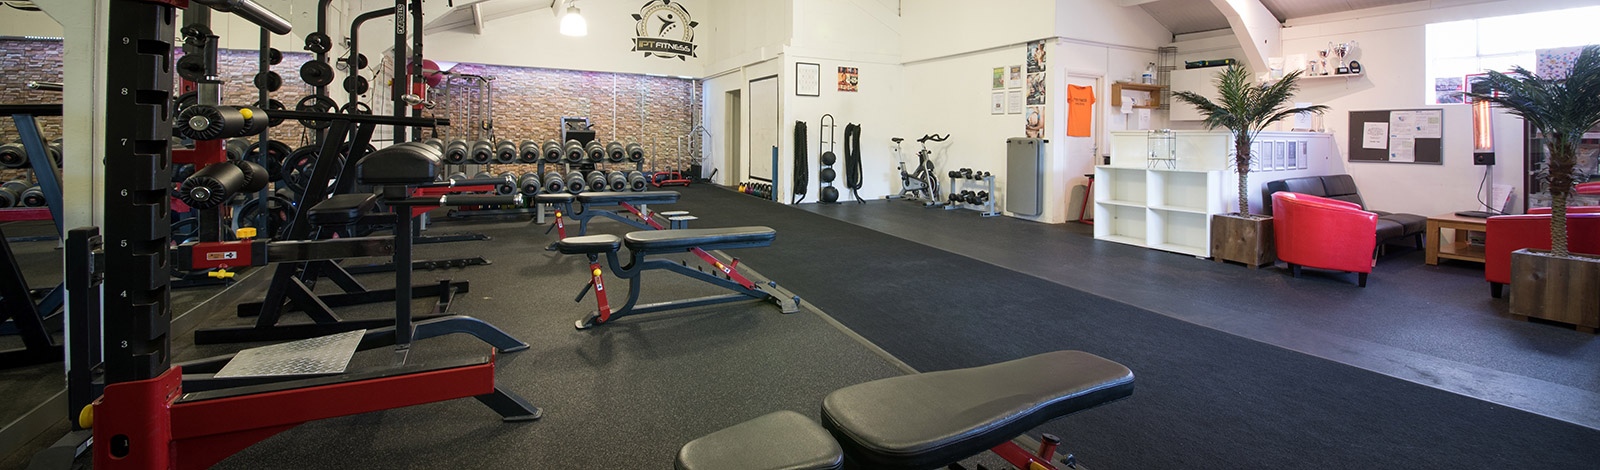 Personal training gym Tunbridge Wells